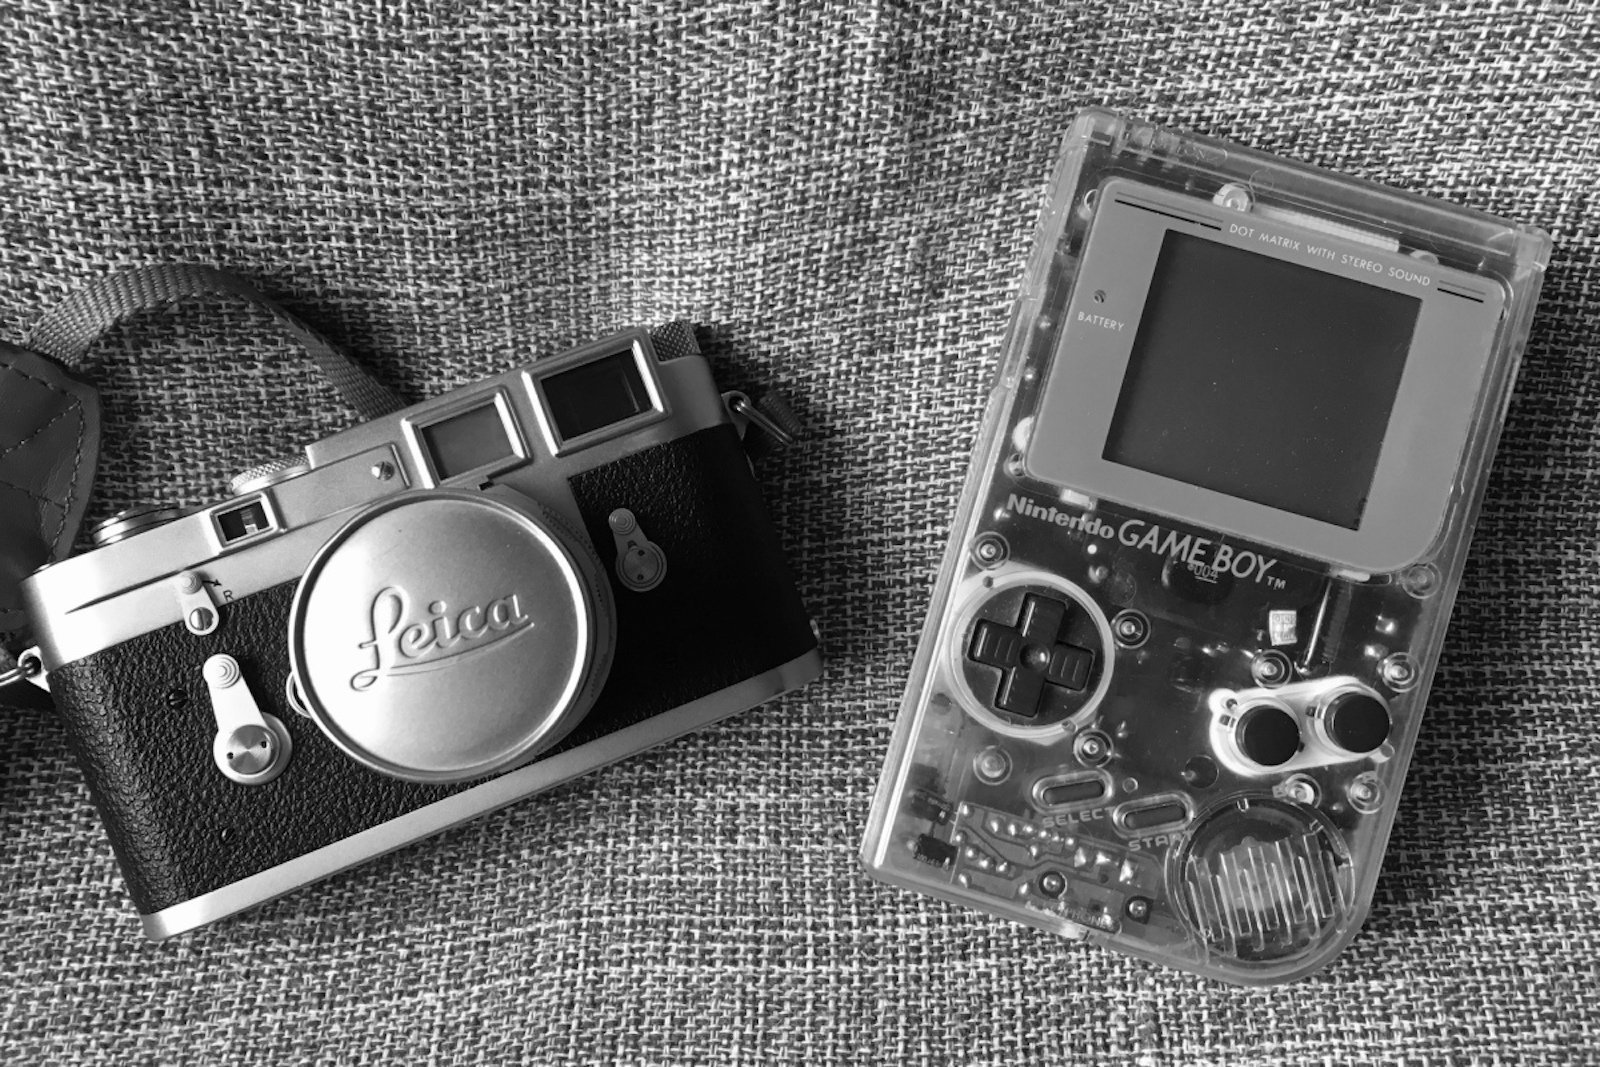 gameboy_vs_leica.jpg